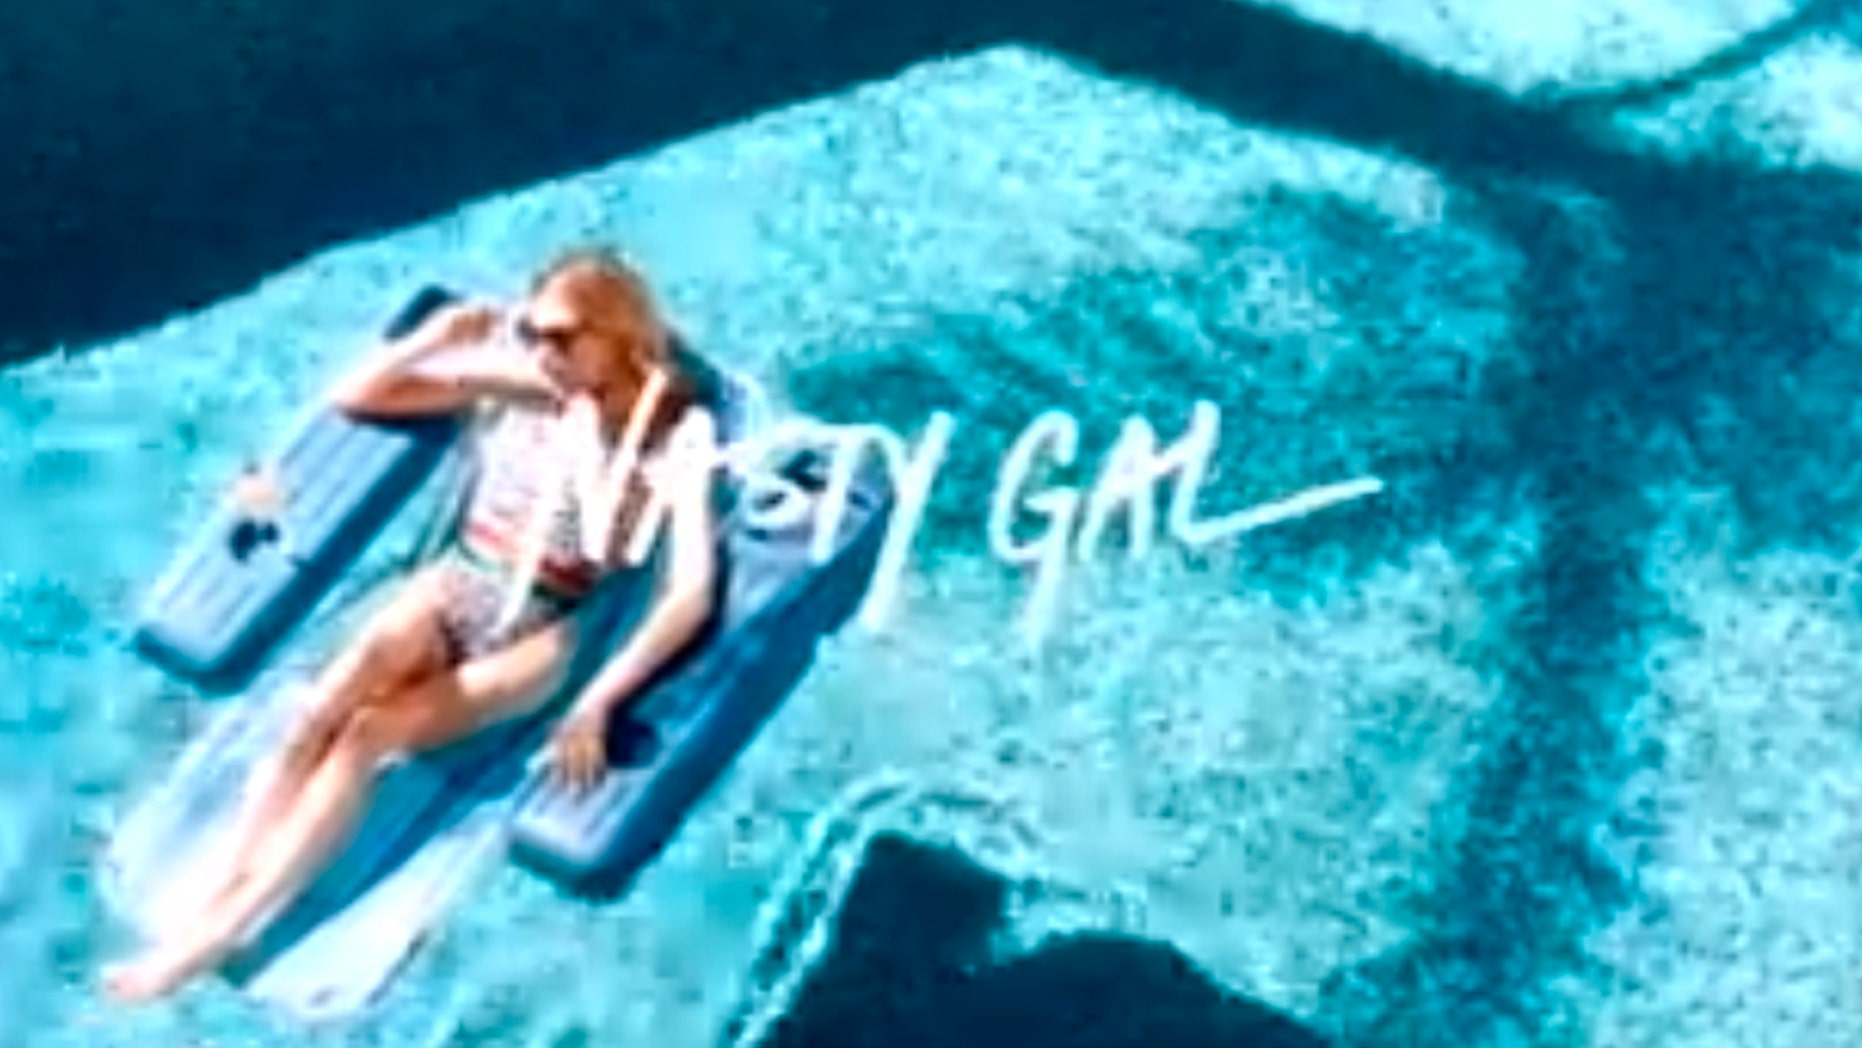 Nasty Gal is in trouble over an advertisement featuring a model people found too thin.